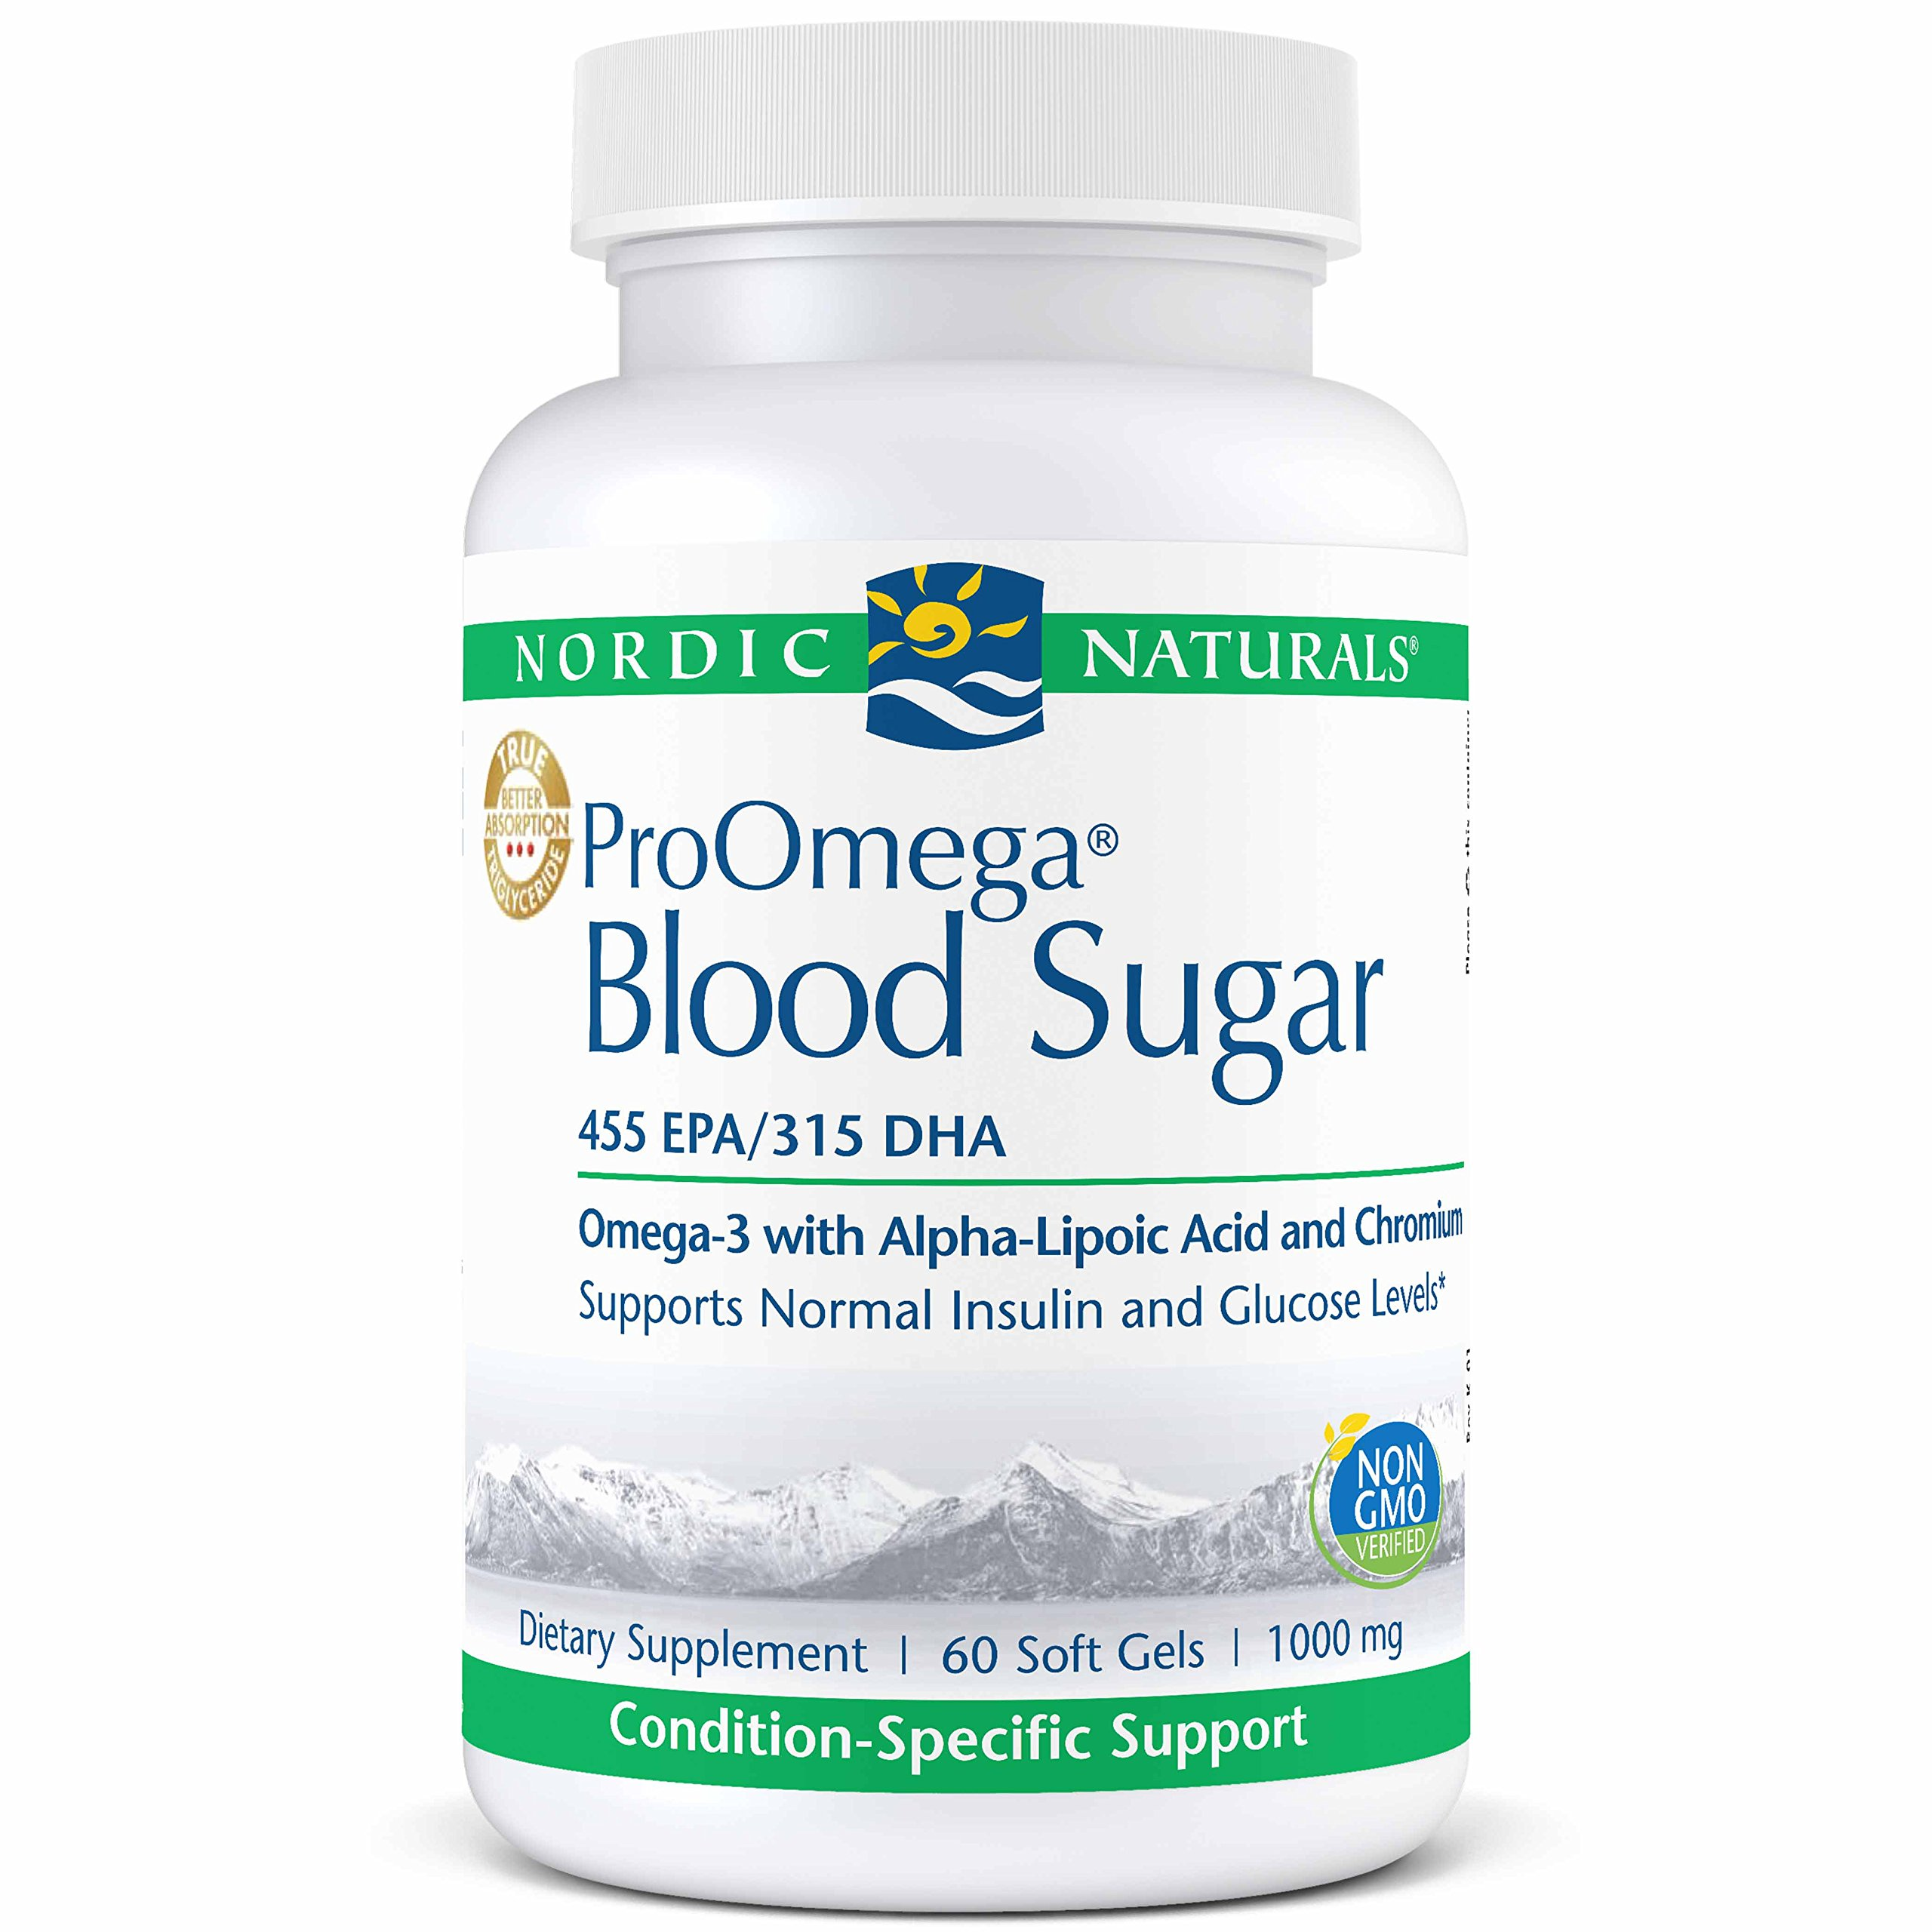 Nordic Naturals ProOmega Blood Sugar - Fish Oil, 455 mg EPA, 315 mg DHA, 200 UG Chromium, 300 mg Alpha-Lipoic Acid, Supports Normal Insulin and Glucose Levels*, 60 Soft Gels